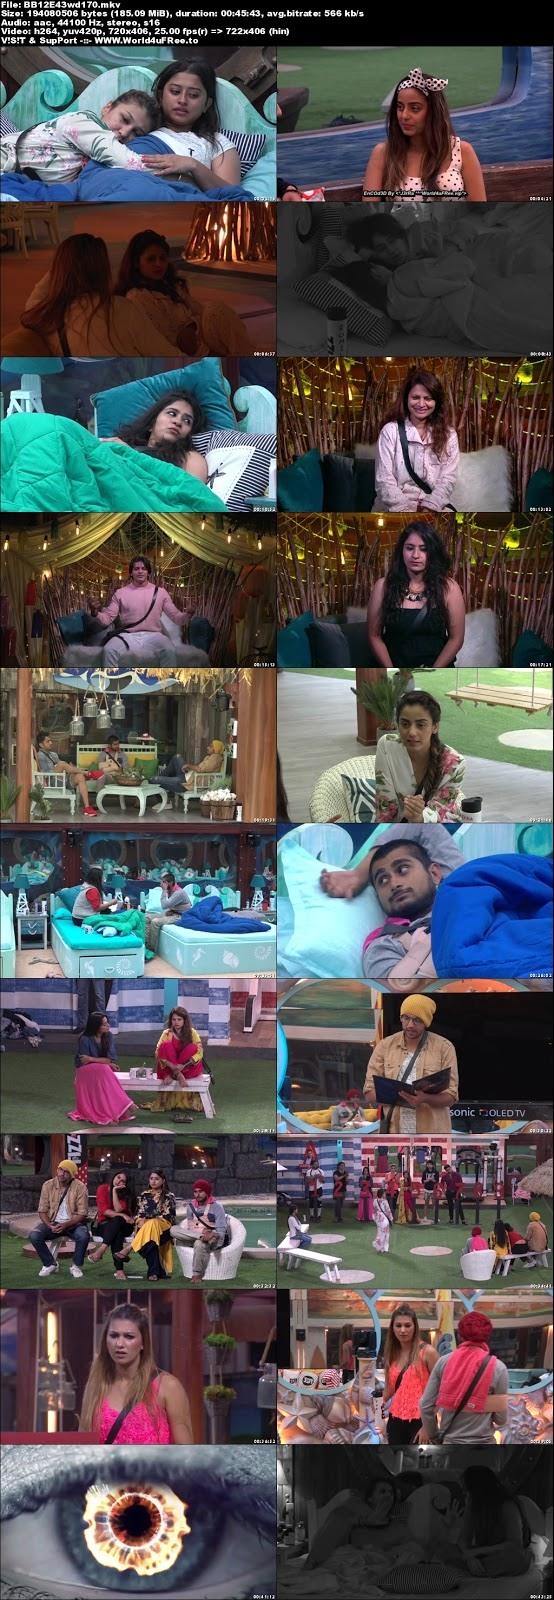 Bigg Boss 12 Episode 43 29 October 2018 WEBRip 480p 170Mb x264 world4ufree.vip tv show Episode 40 26 October 2018 world4ufree.vip 200mb 250mb 300mb compressed small size free download or watch online at world4ufree.vip